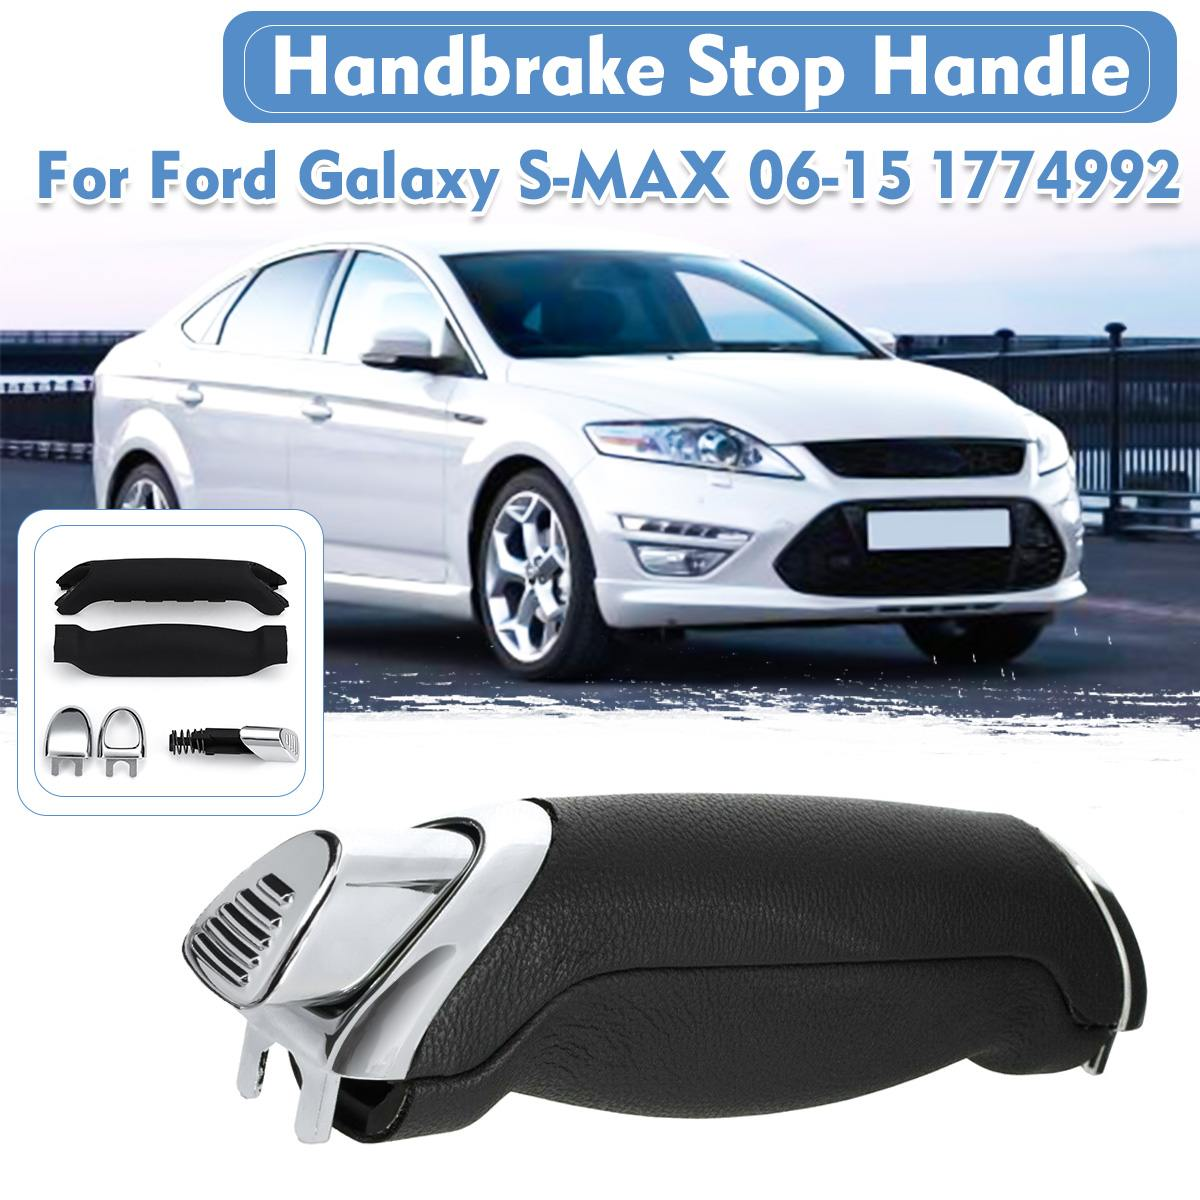 1 SET Easy Install Parking Handbrake Stop Handle Lever Kit For Ford For Galaxy For S-MAX 2006-2015 1774992 Car Accessories